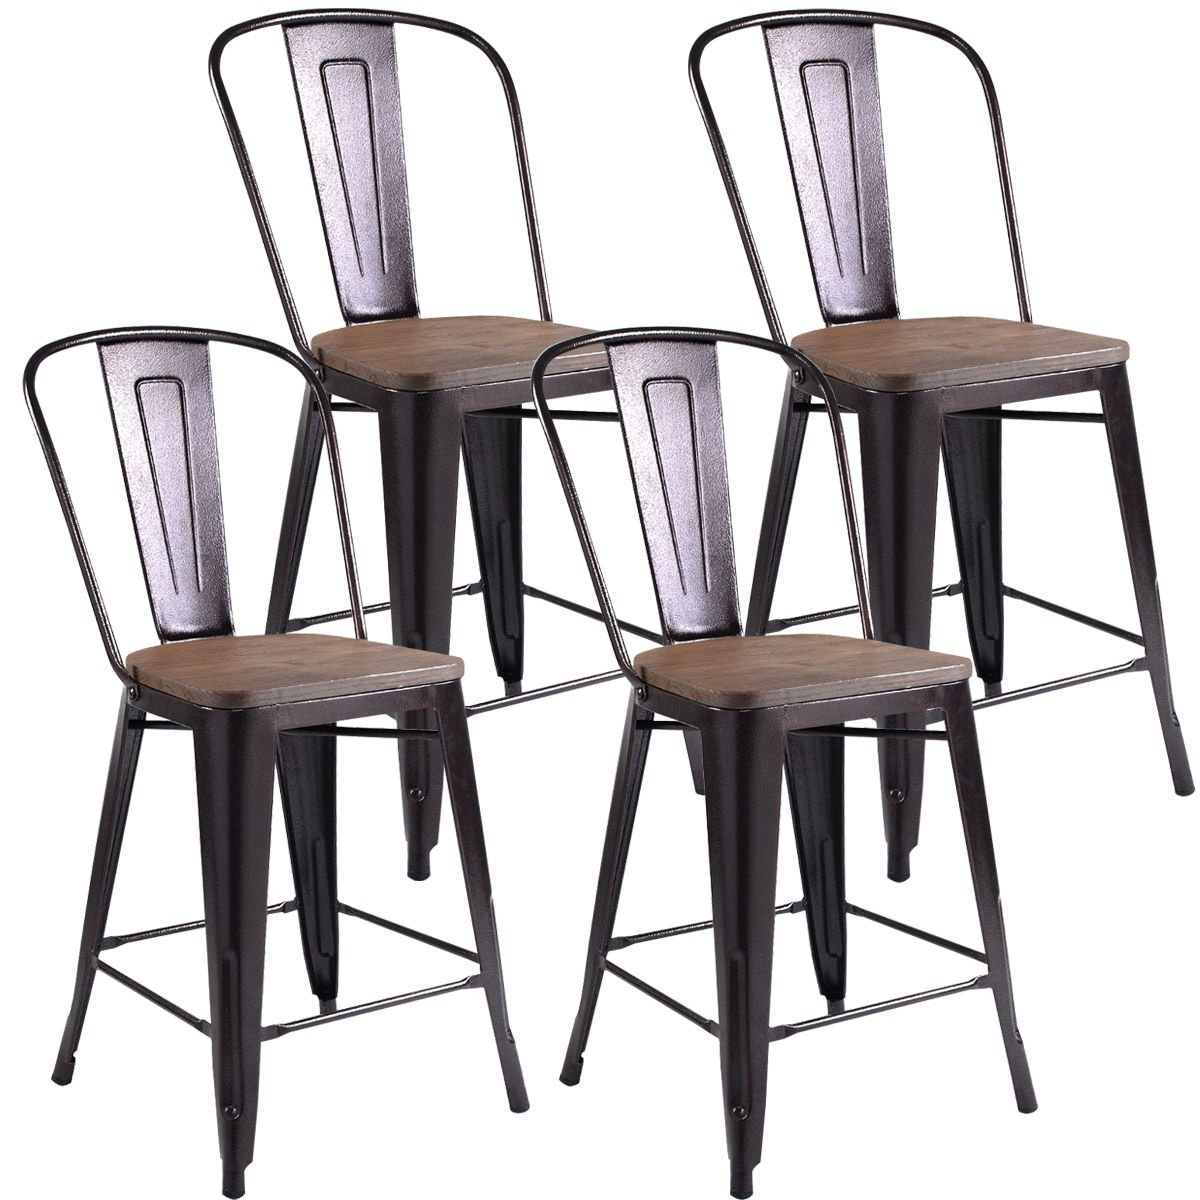 Costway 23.6'' Copper Set of 4 Metal Wood Counter Stool Kitchen Dining Bar Chairs Rustic